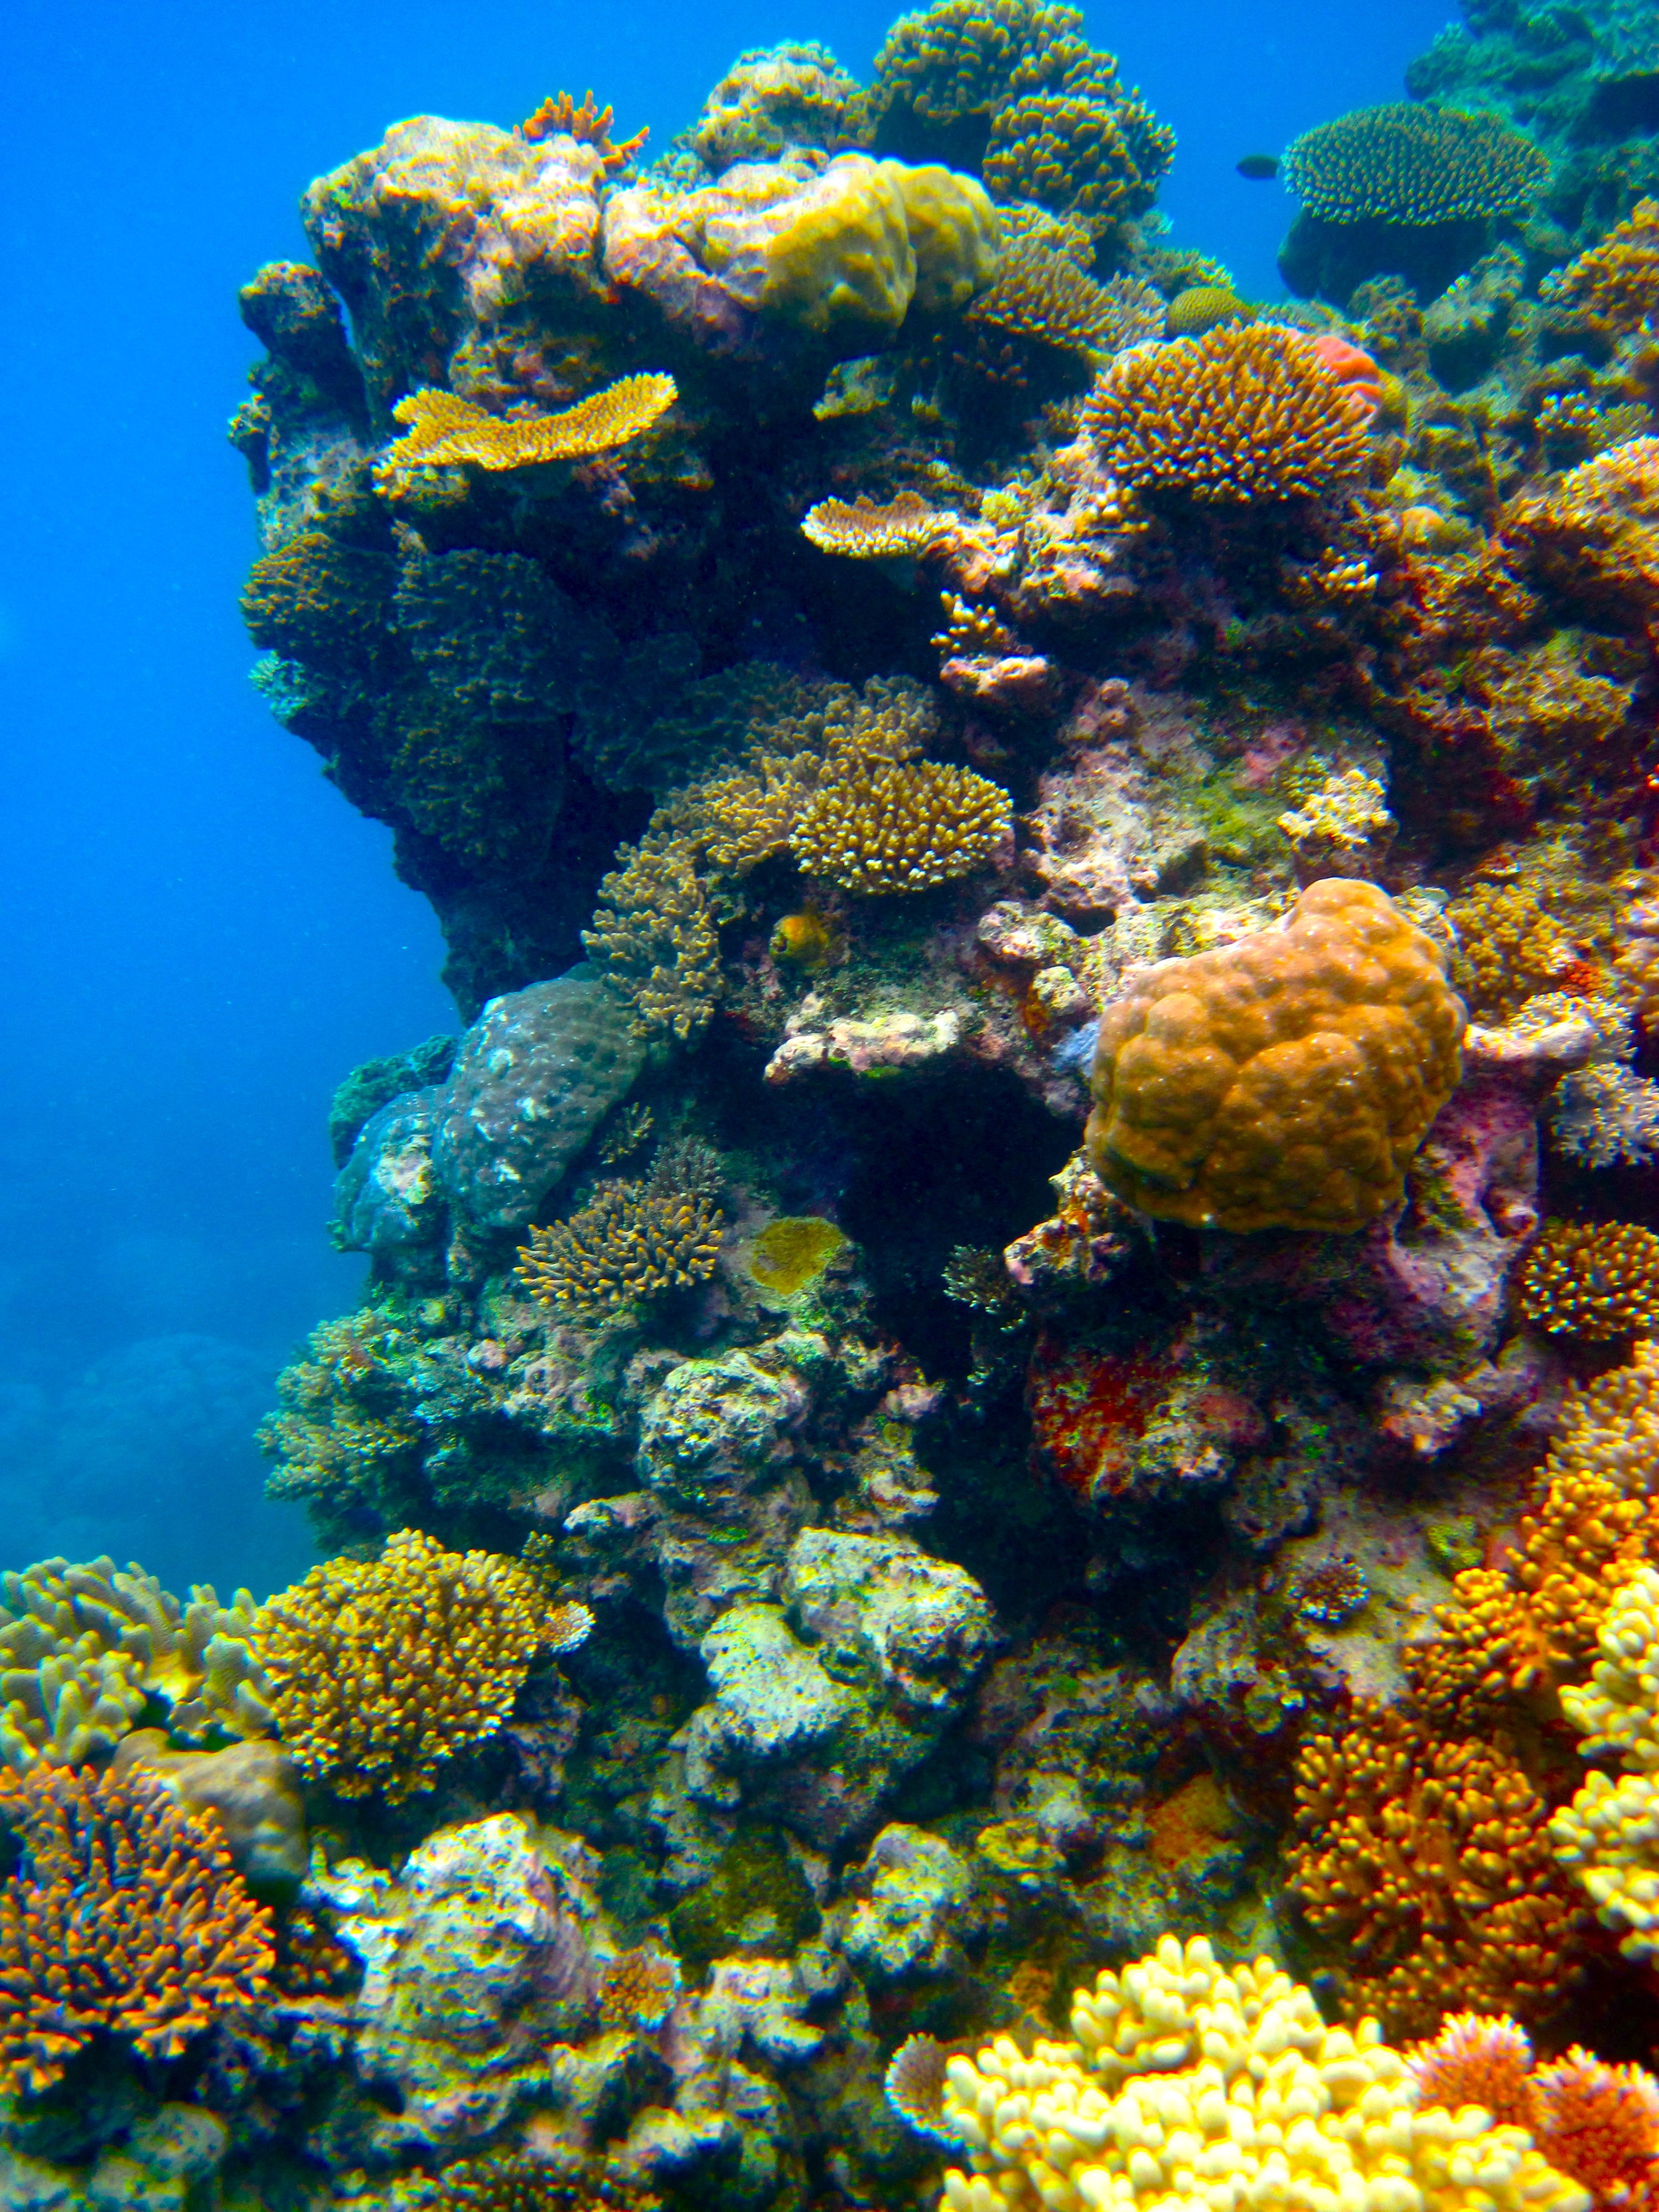 The Australian Great Barrier Reef is one of the many places impacted by coral bleaching, endangering the habitat and life within it.  Photo by Kyle Taylor from Flickr Creative Commons